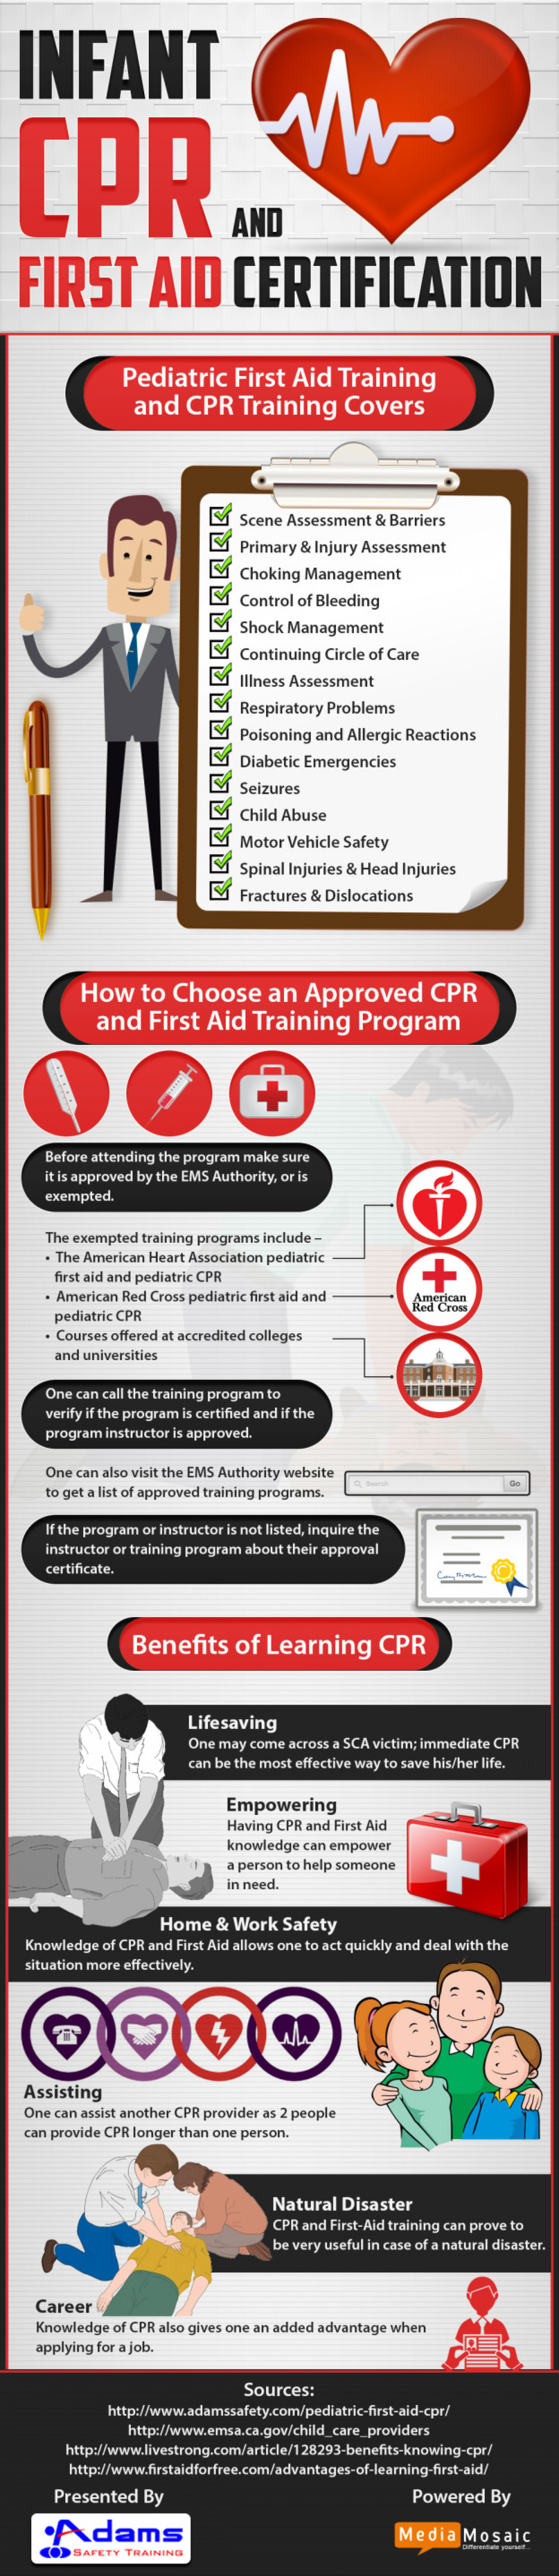 Infant Cpr And First Aid Certification Infographic Visual